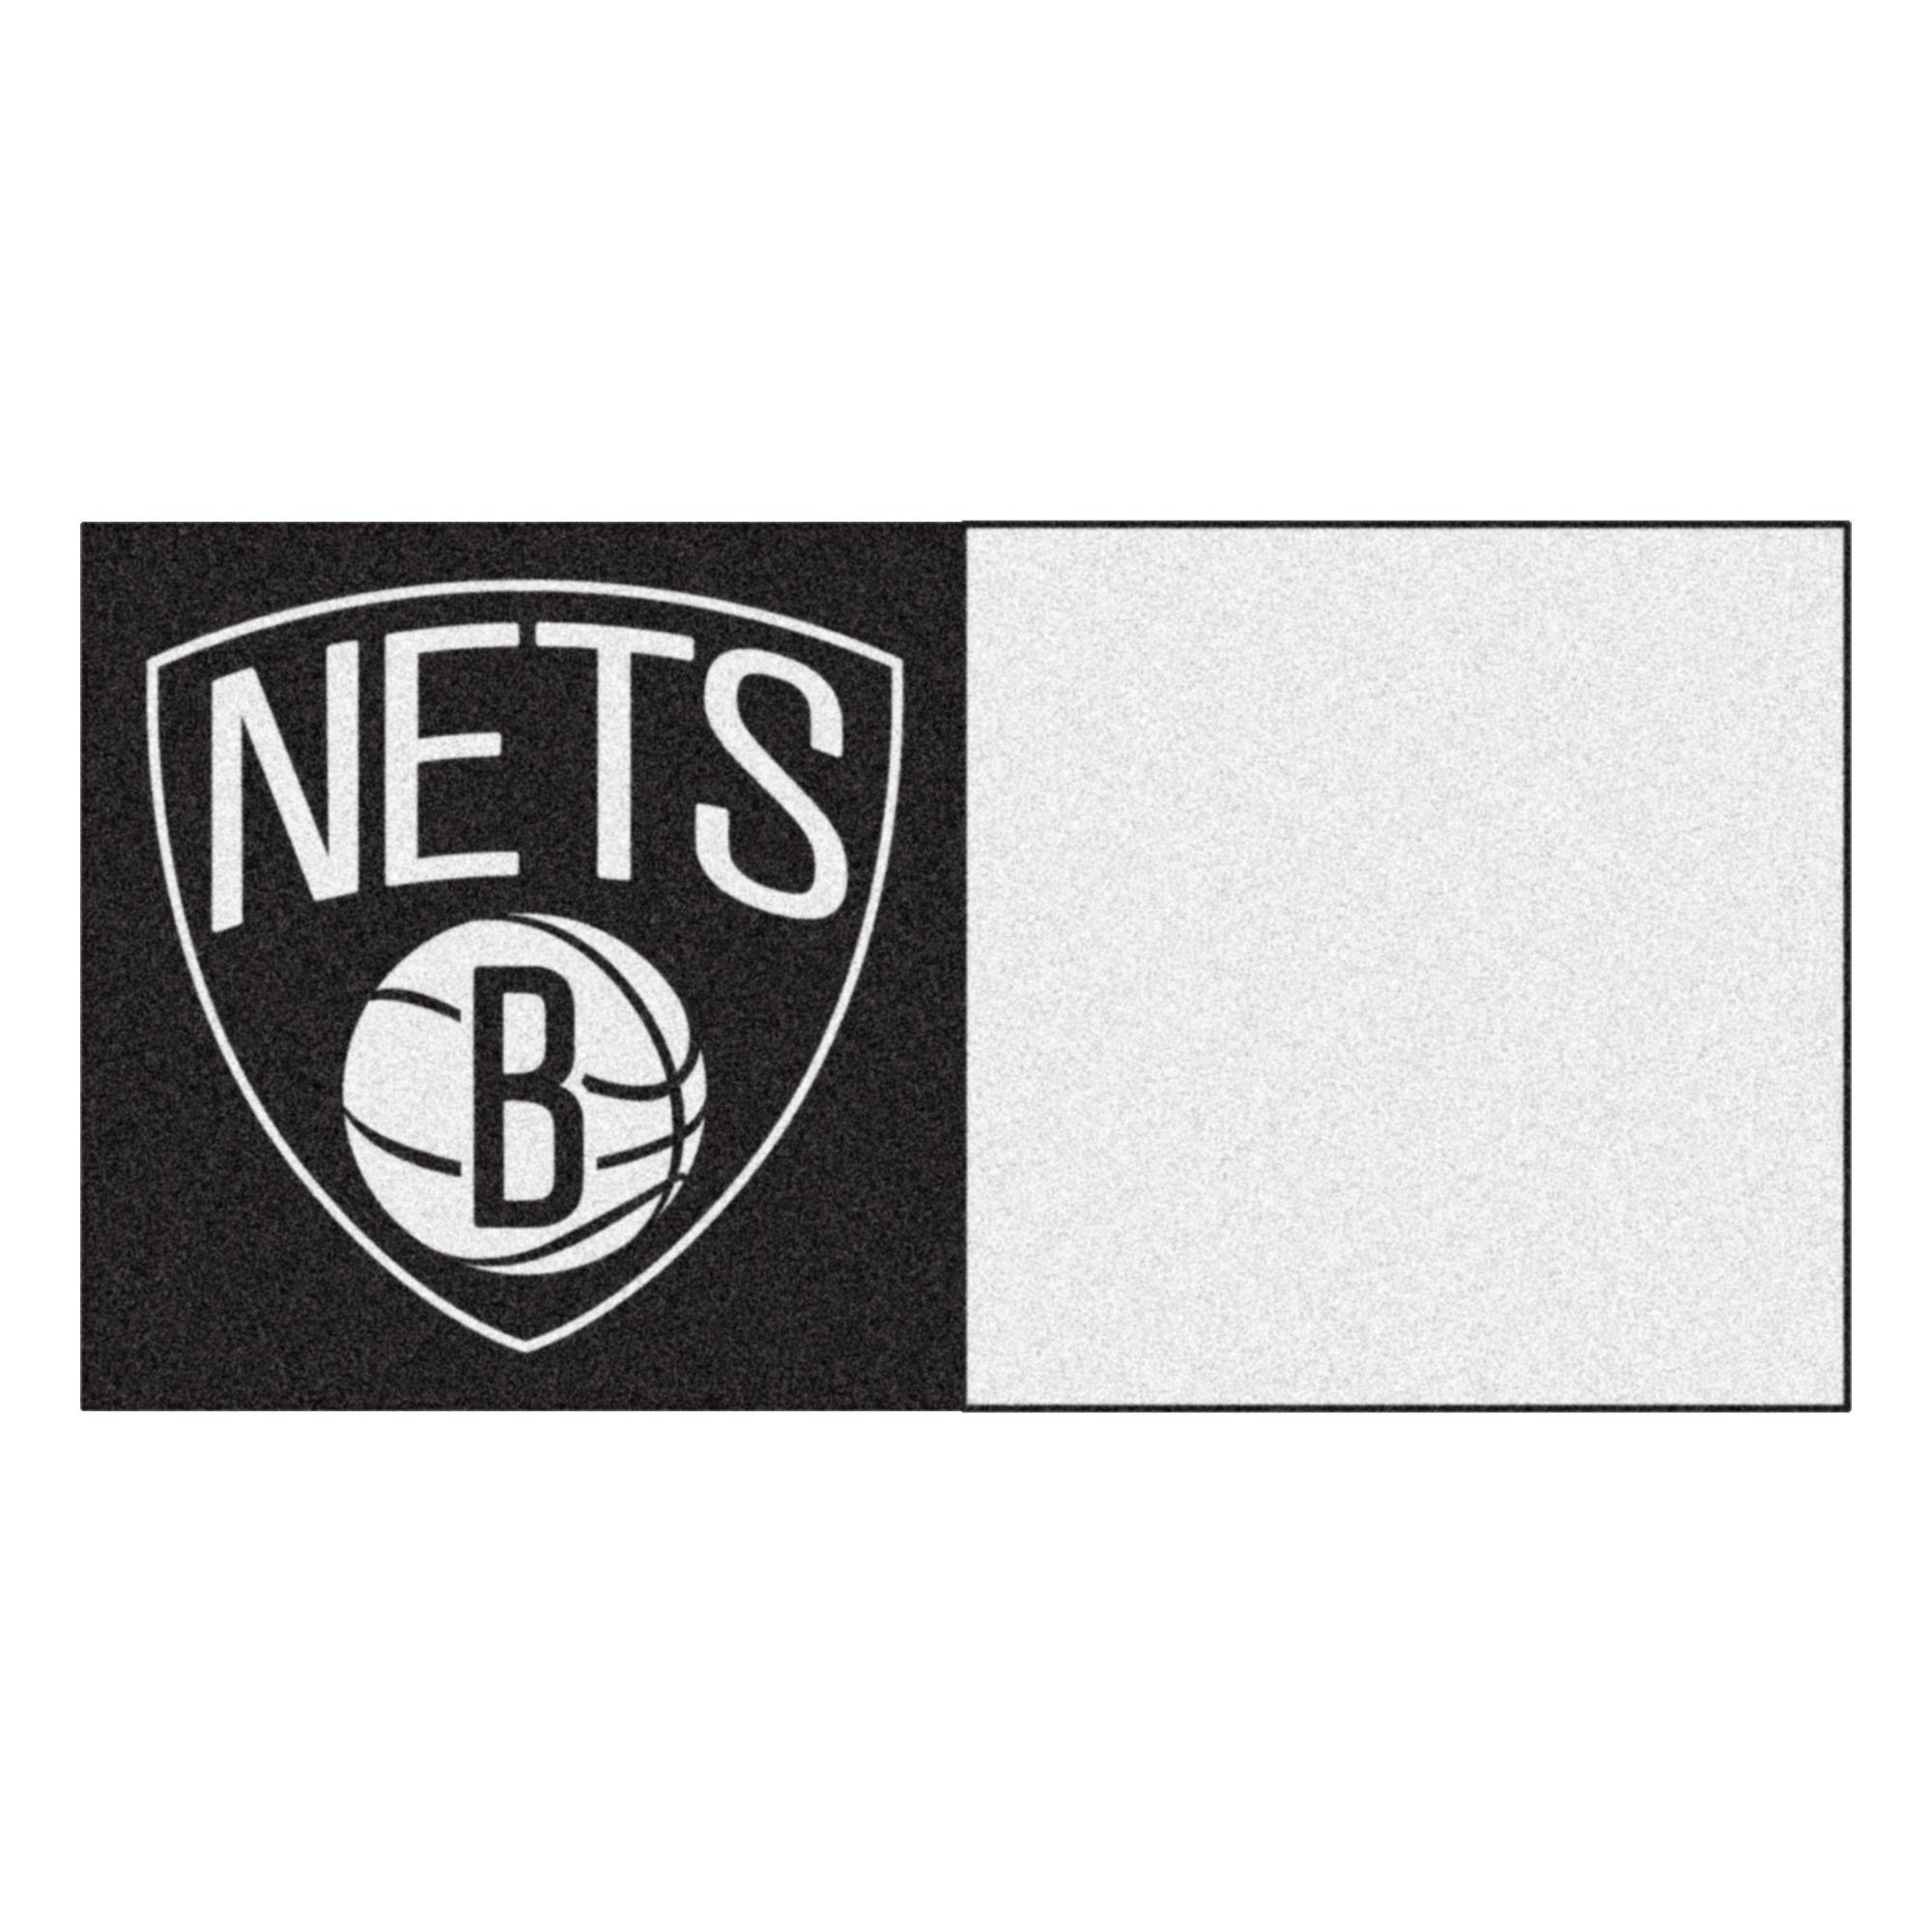 FANMATS NBA Brooklyn Nets Nylon Face Team Carpet Tiles